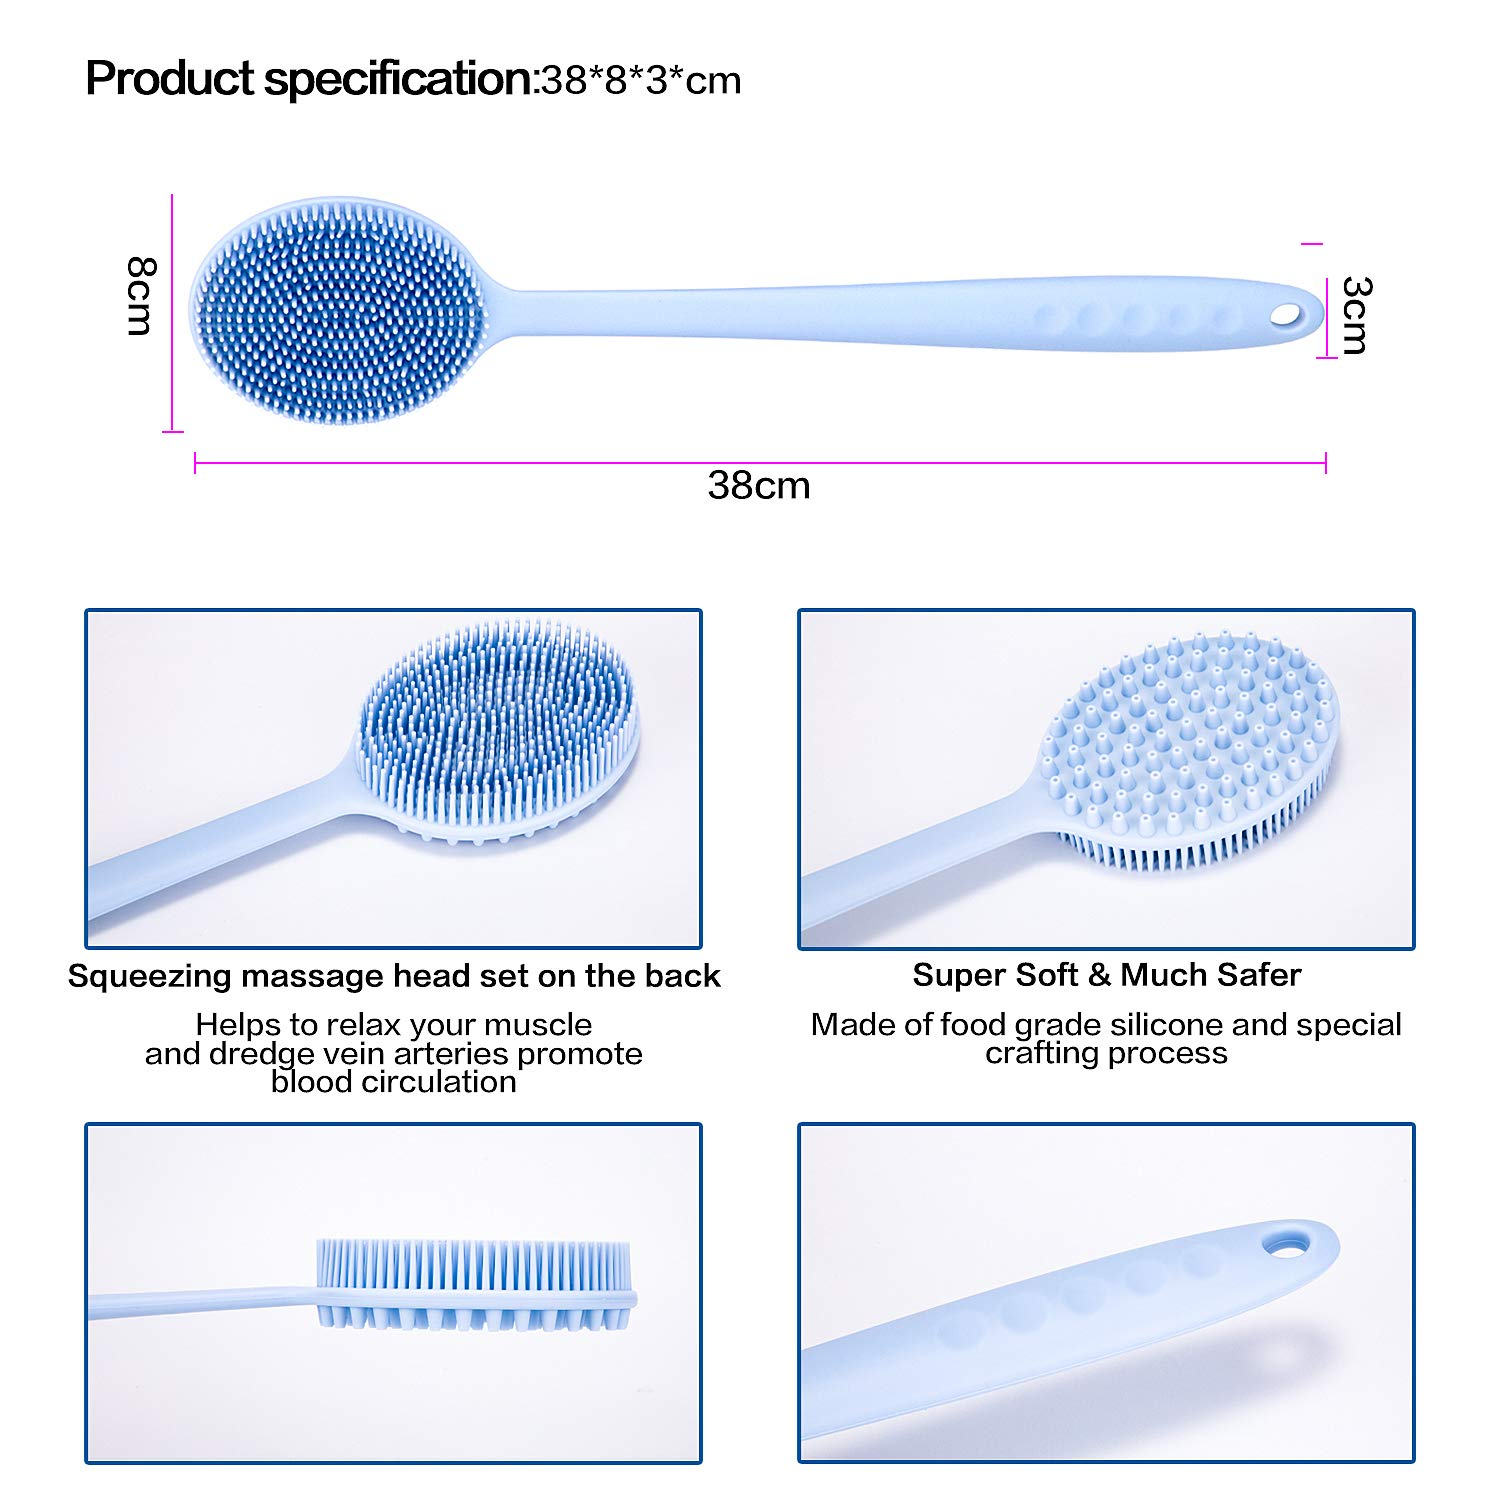 Bath Body Brush Ultra Soft Silicone Shower Back Scrubber for Healthy Sensitive Skin Care Massage Cleanser with Long Handle - Blue